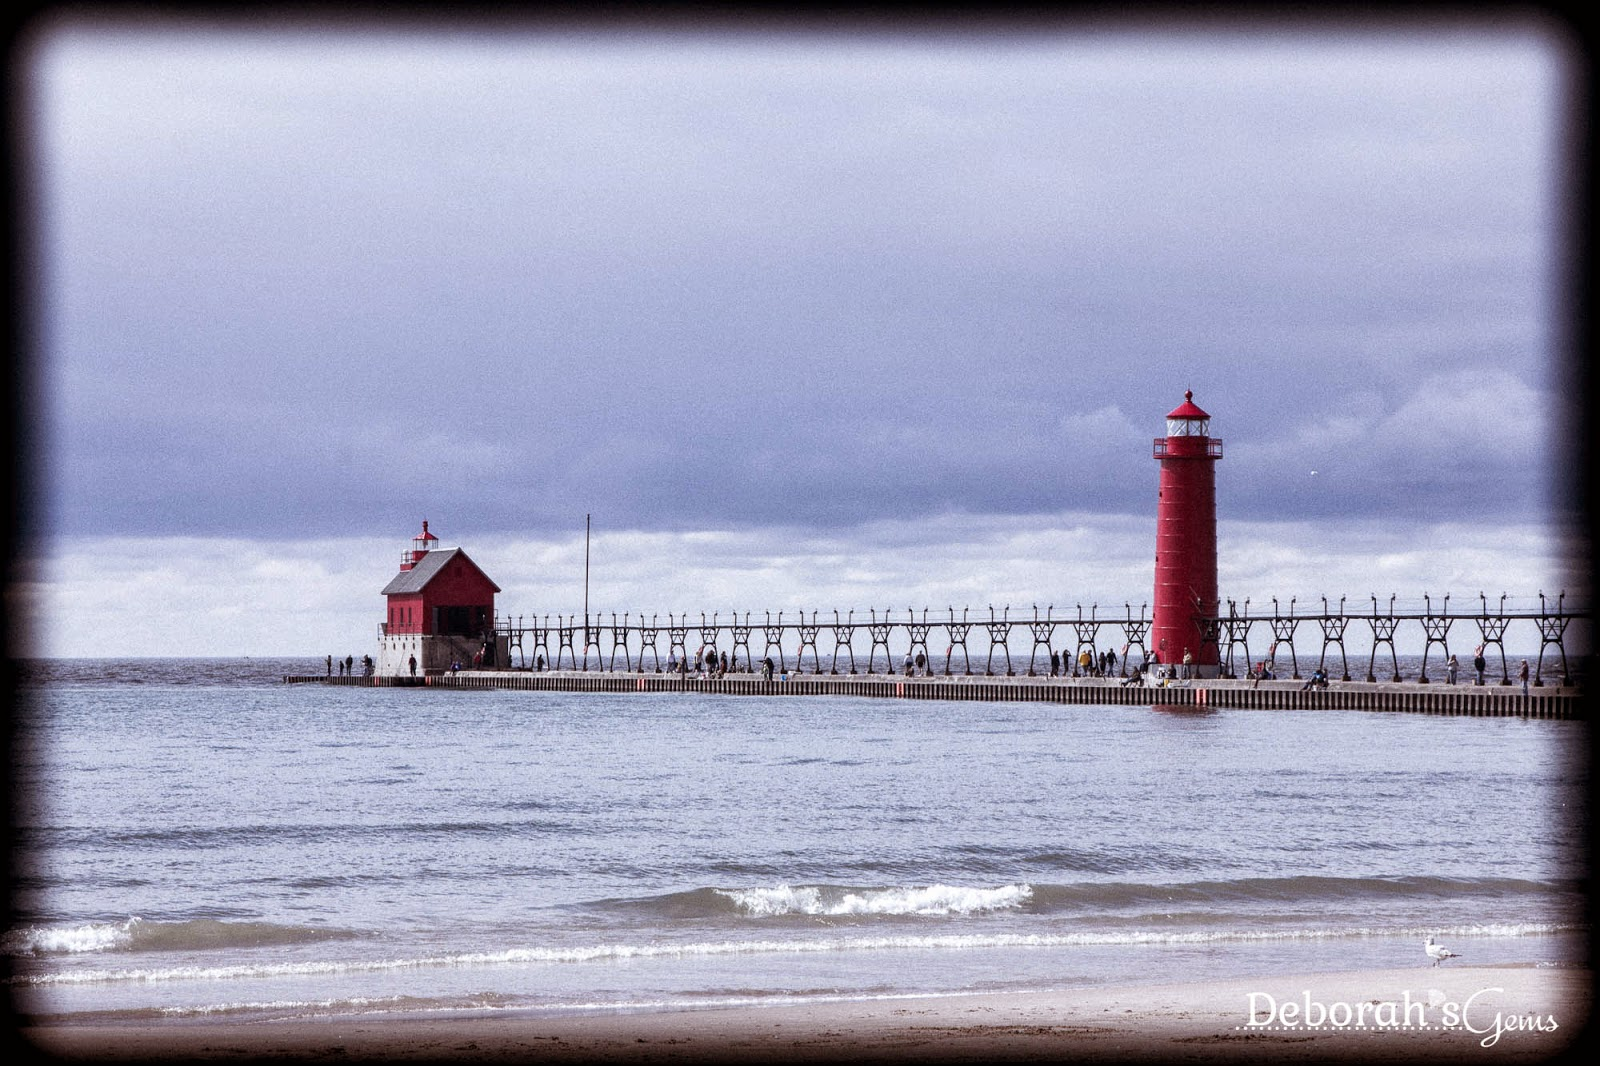 Grand Haven & Muskegon 2 - photo by Deborah Frings - Deborah's Gems